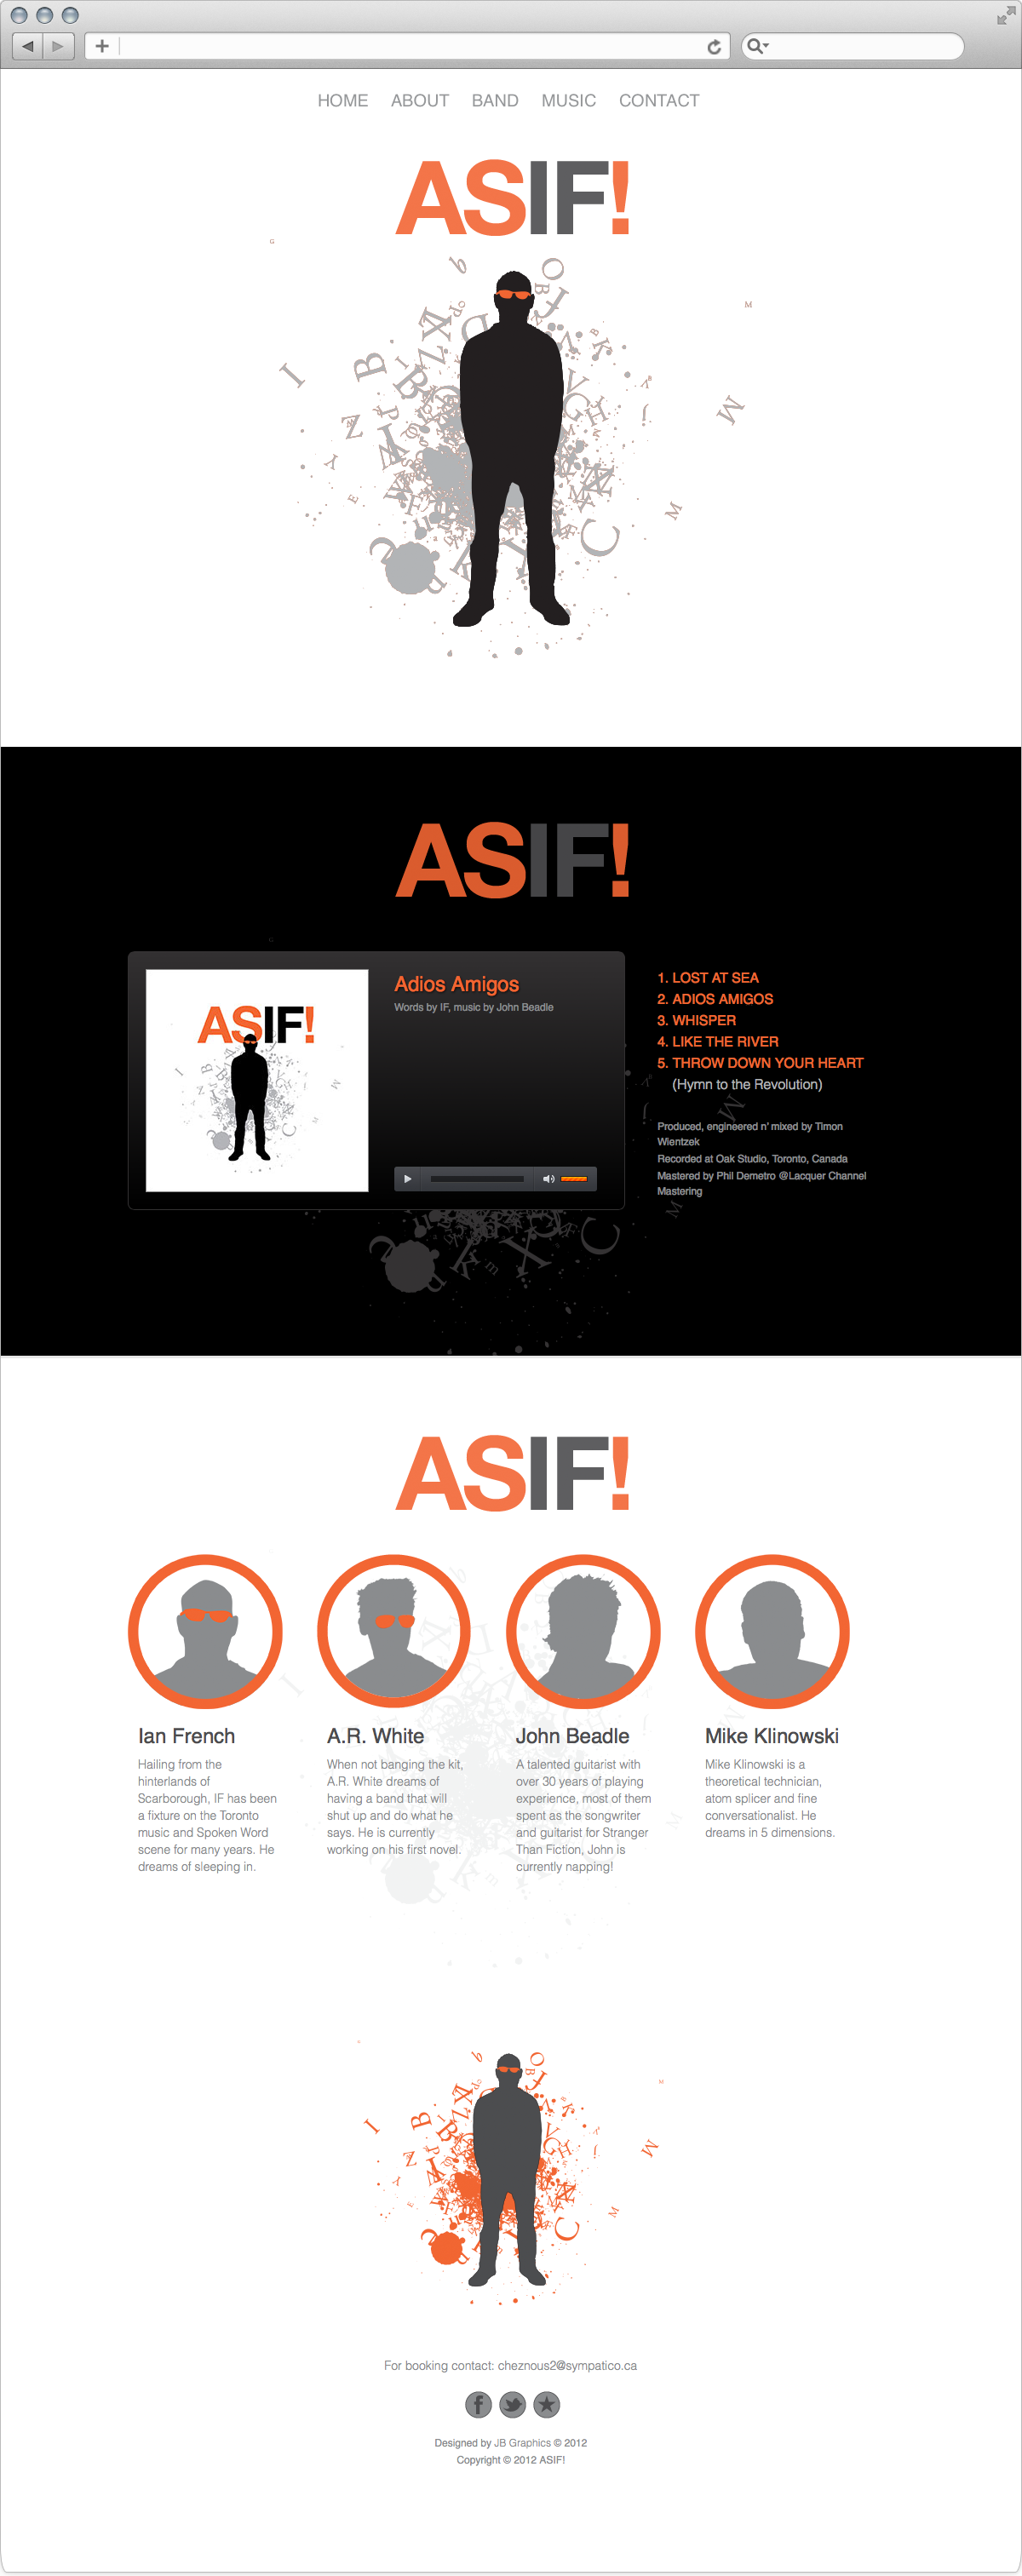 ASIF web site designed by John Beadle